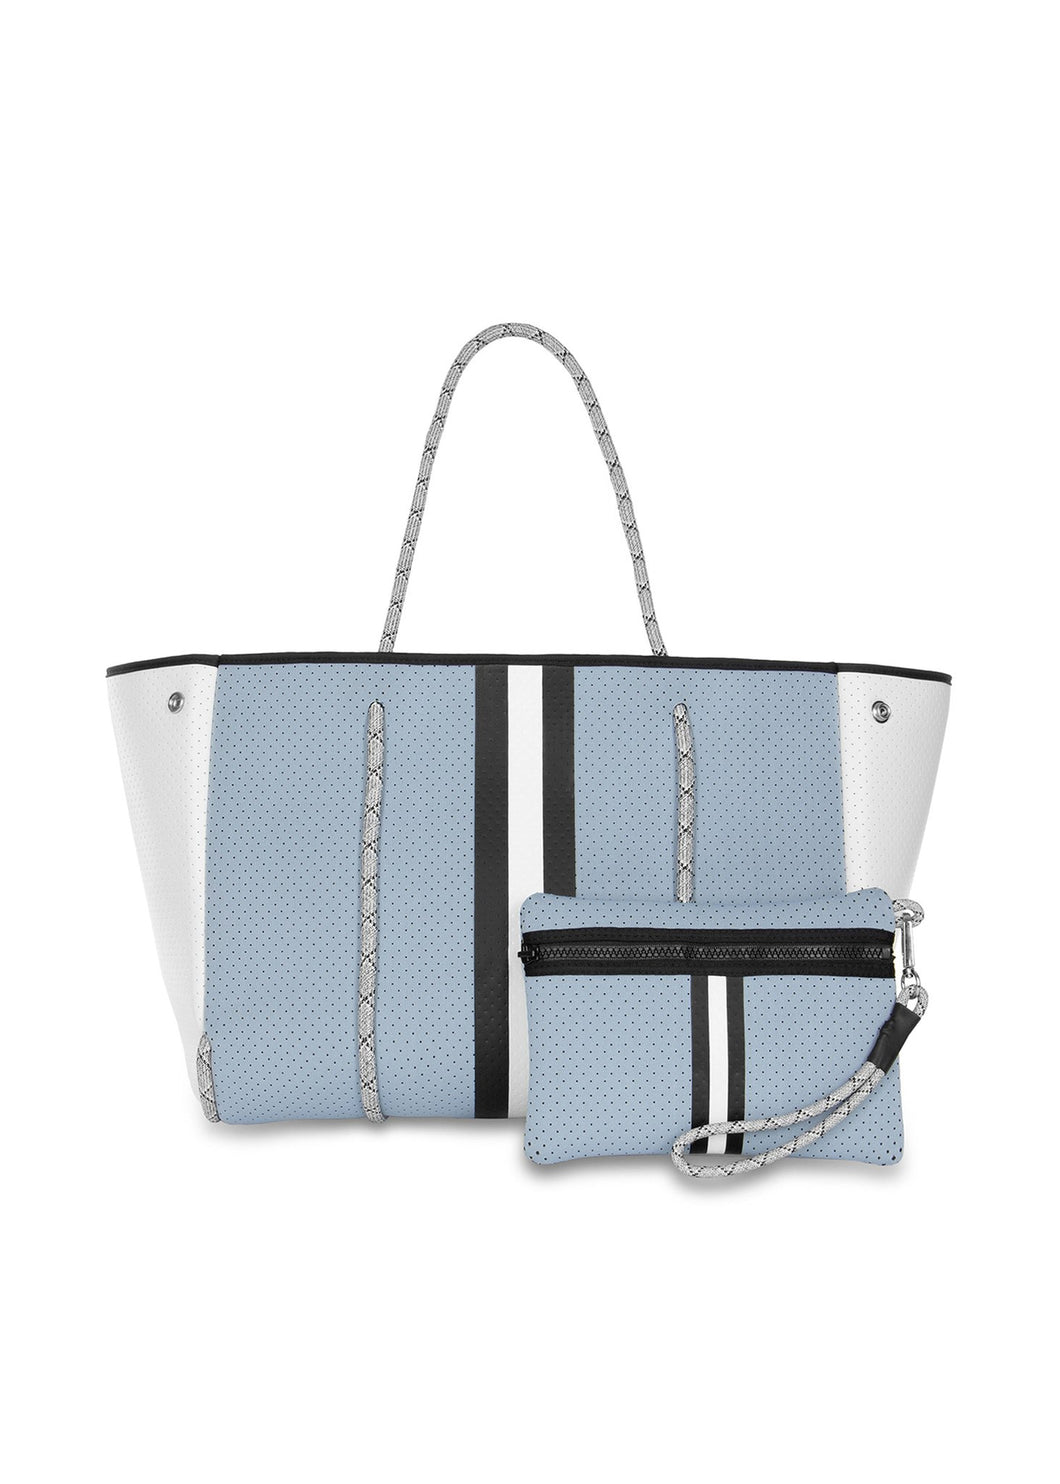 Neoprene Tote in Lake